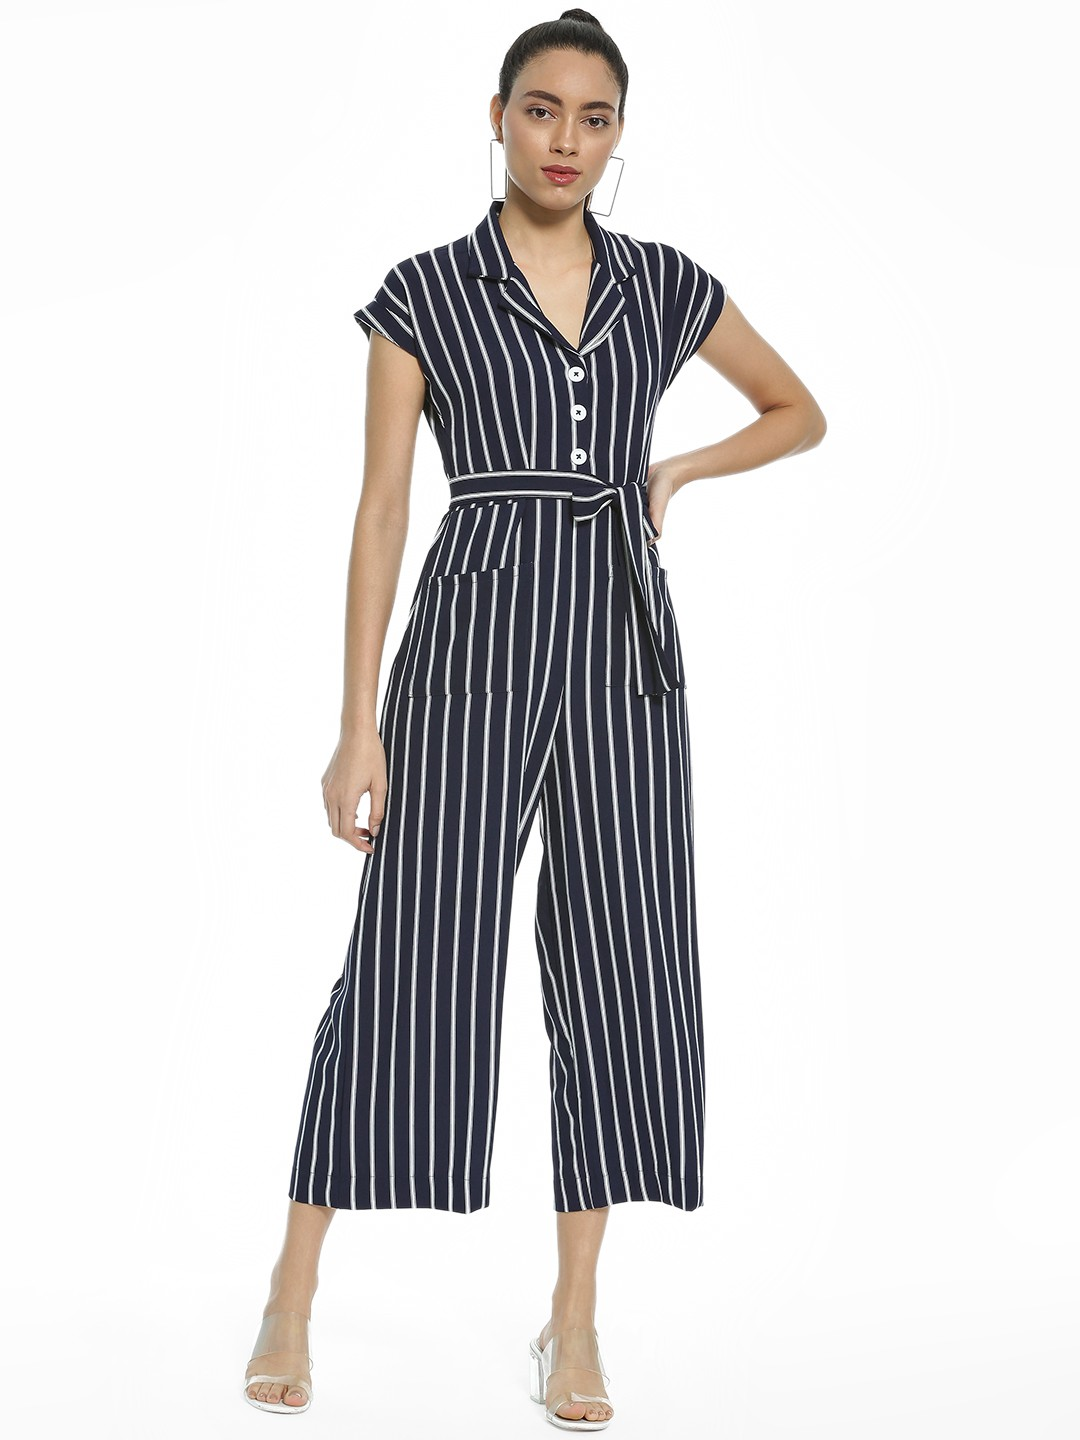 AND Blue Vertical Stripe Collared Jumpsuit 1